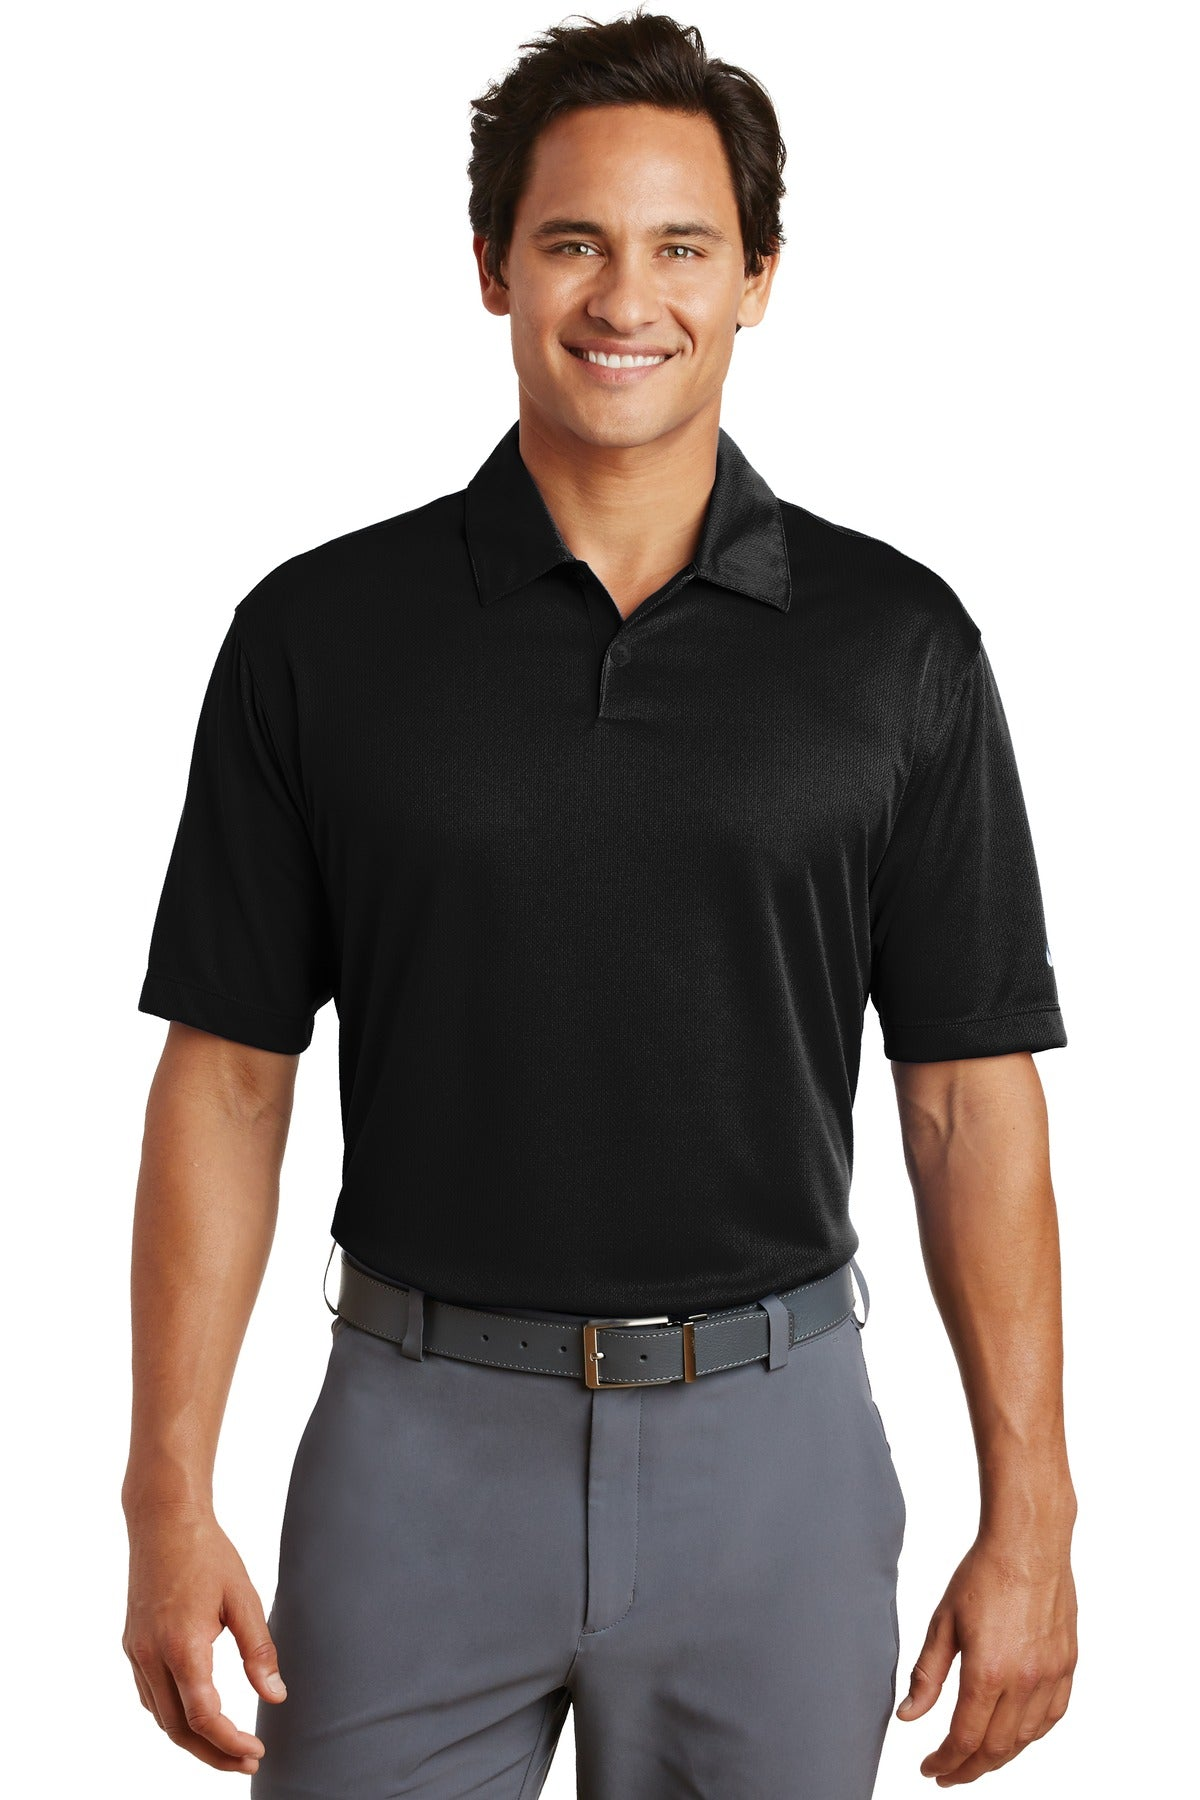 Nike Dri-FIT Pebble Texture Polo Shirt